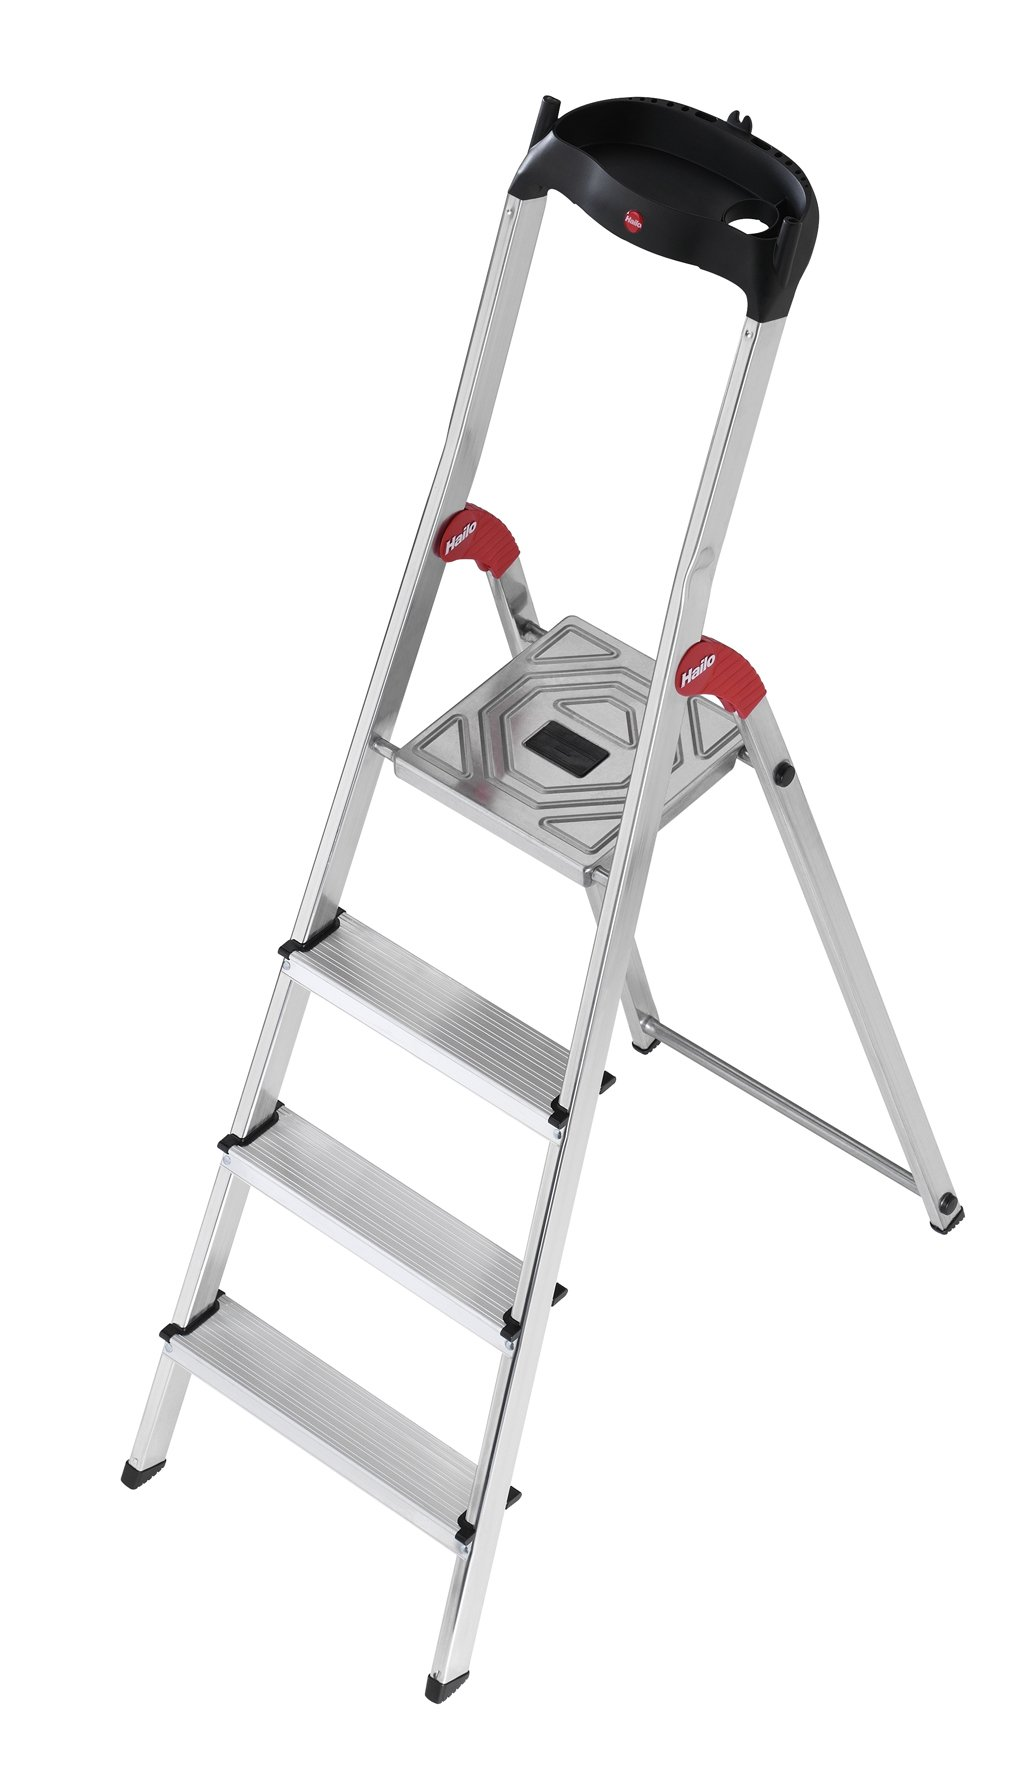 Hailo 8504-001 L60-Model 225-Pound Capacity ANSI Certified Aluminum Ladder, 5-Foot